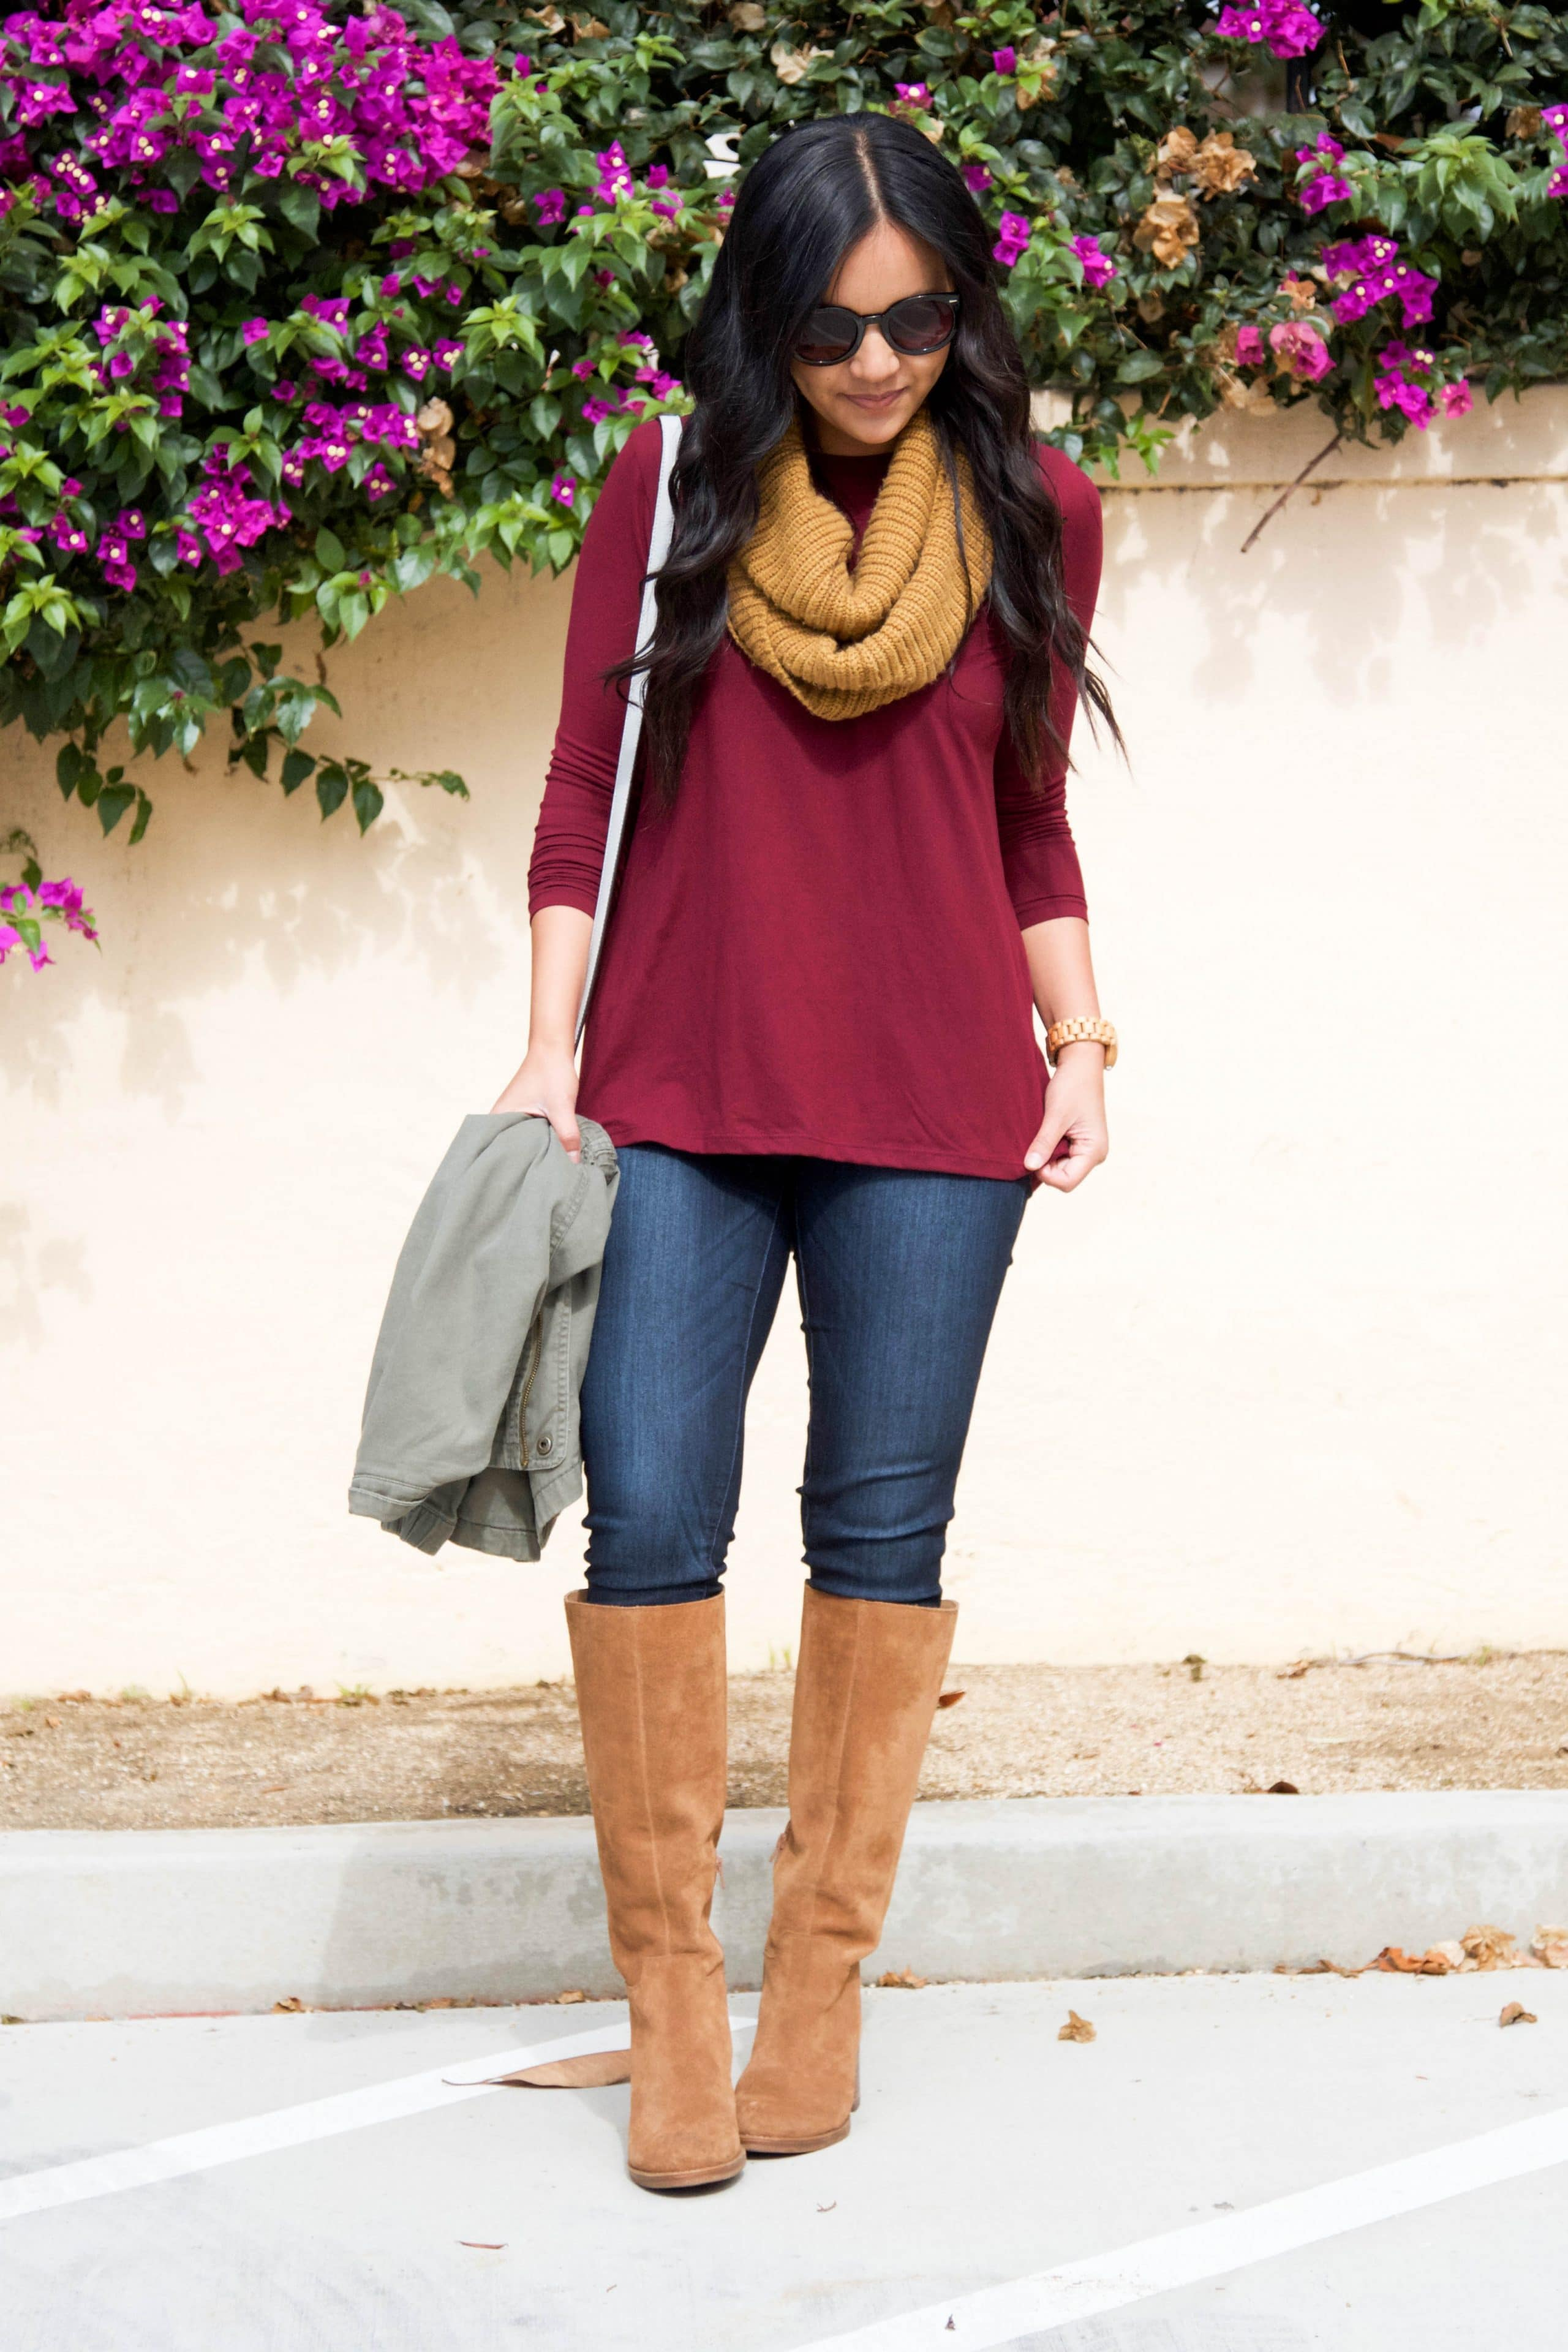 maroon top + jeans + suede boots + mustard scarf